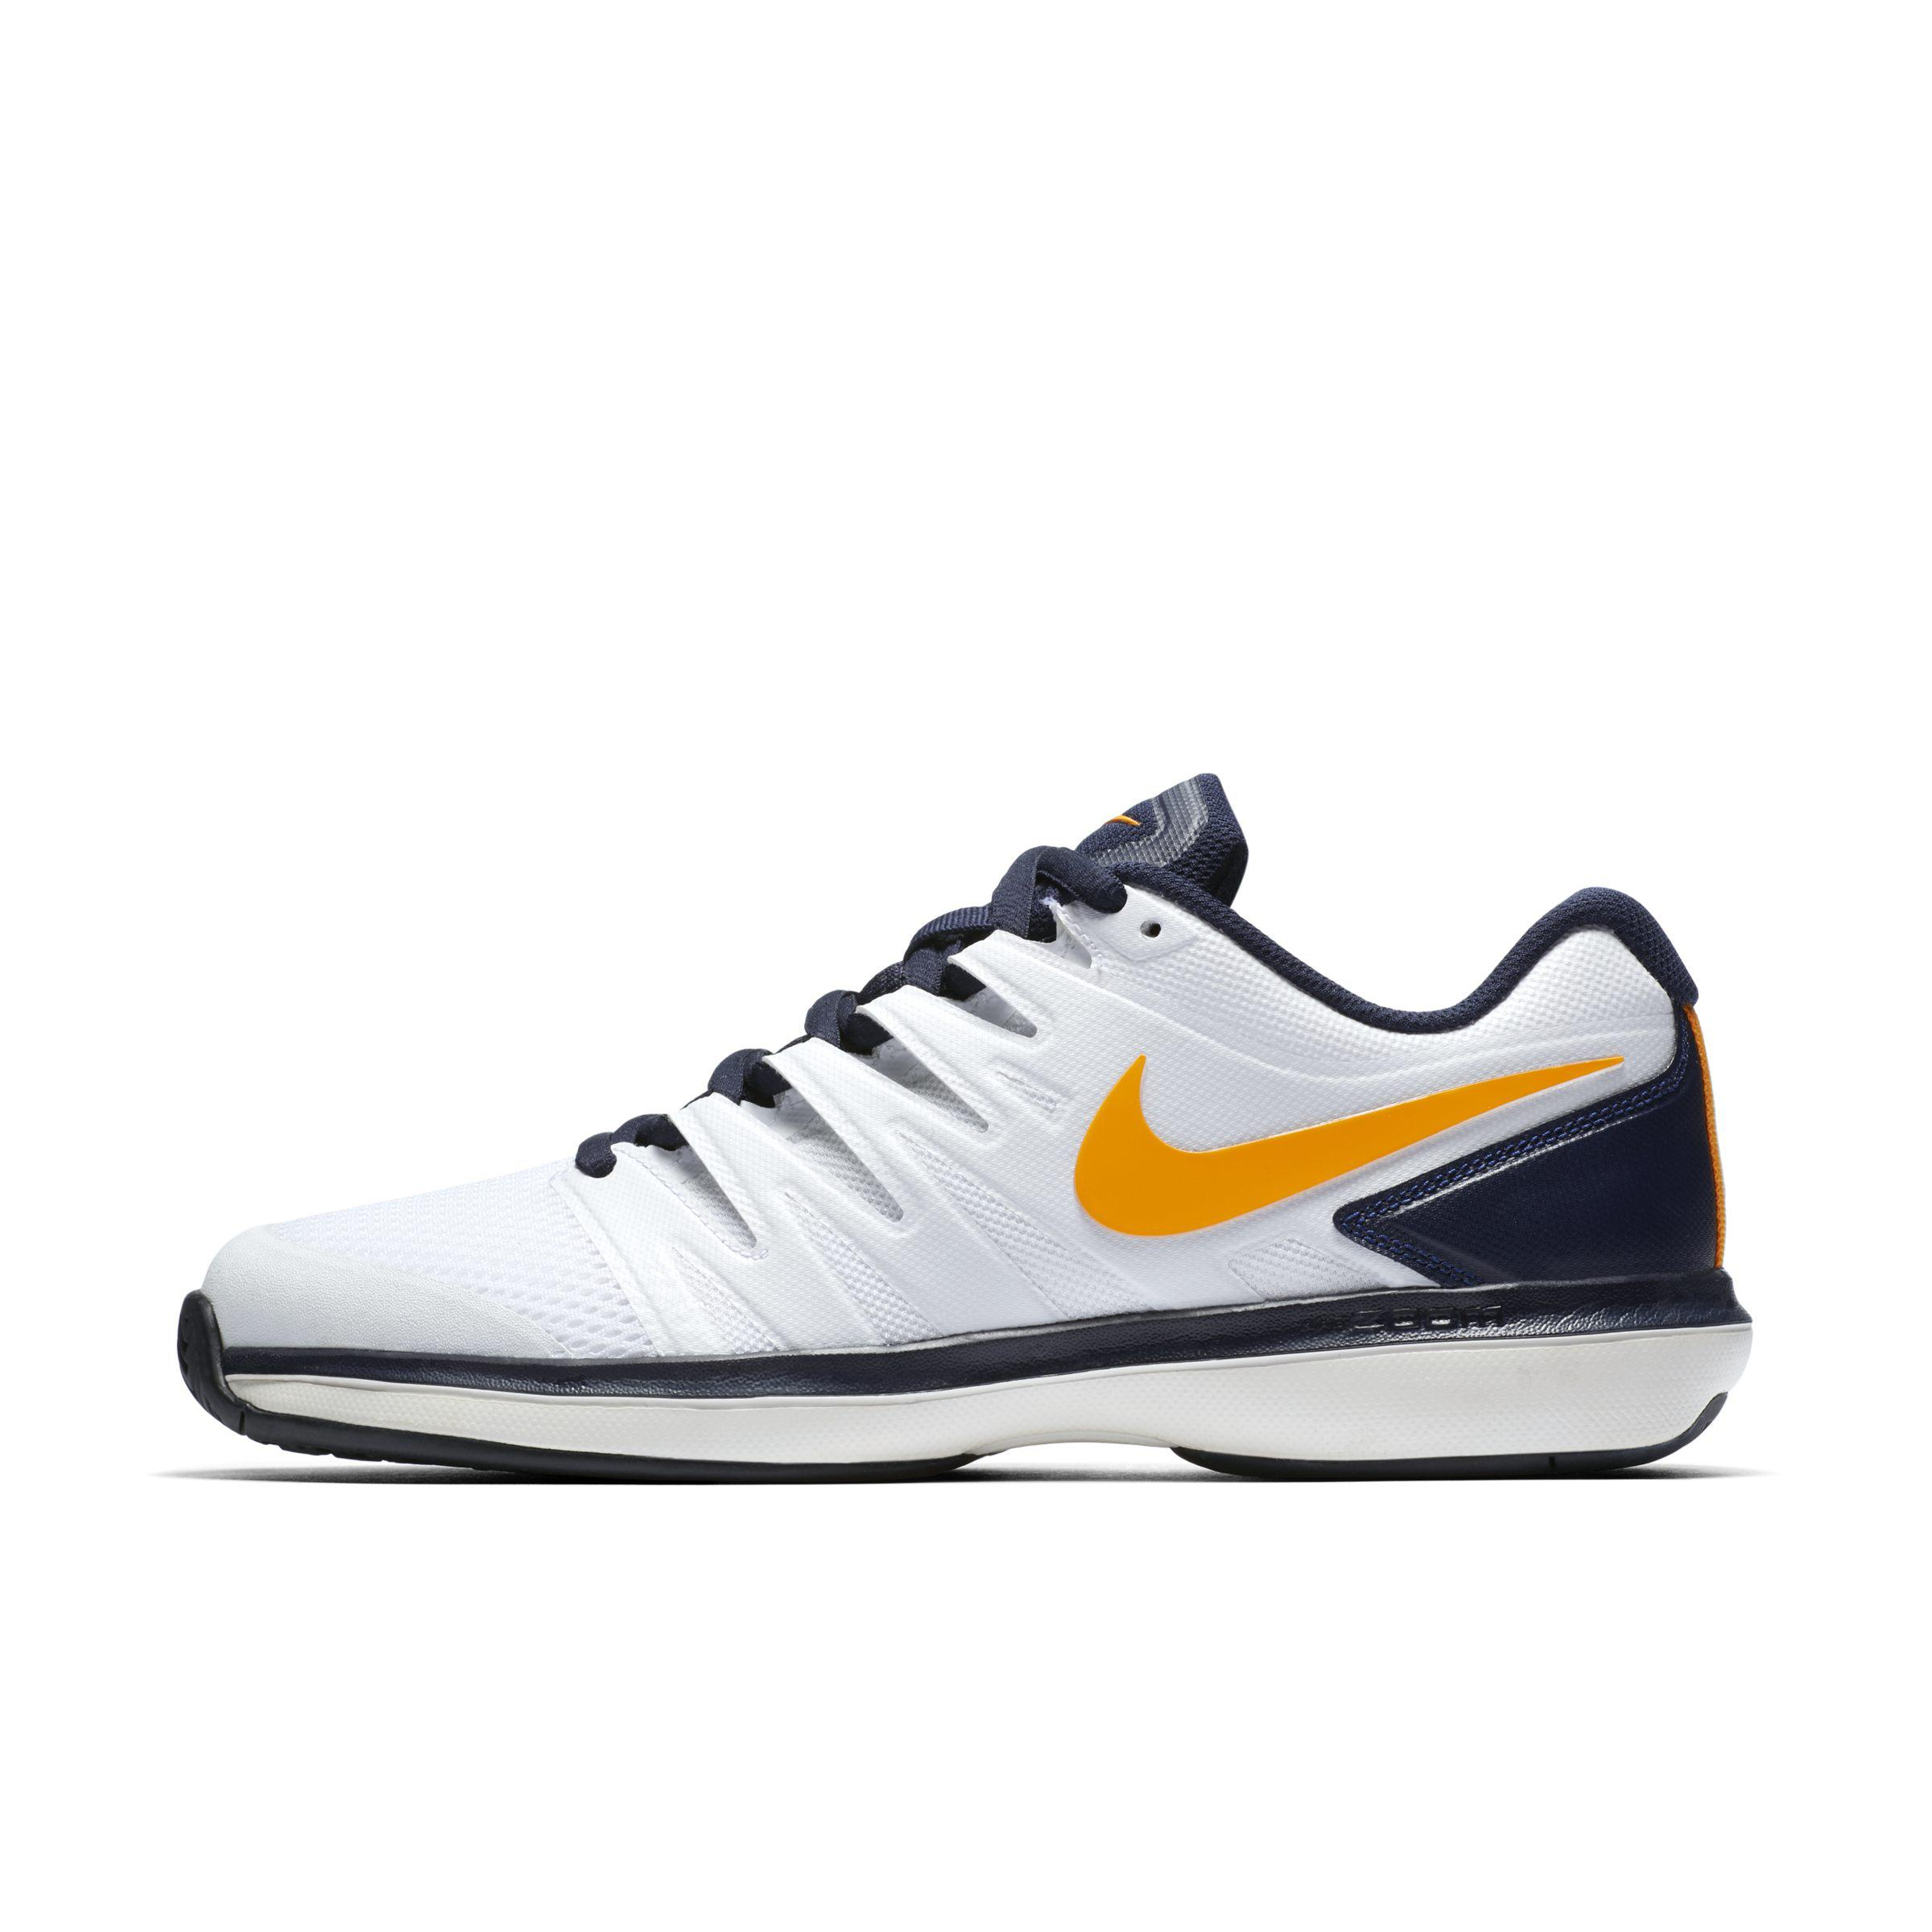 9e924ec2623a3 Nike Court Air Zoom Prestige Hard Court Tennis Shoe in White for Men ...